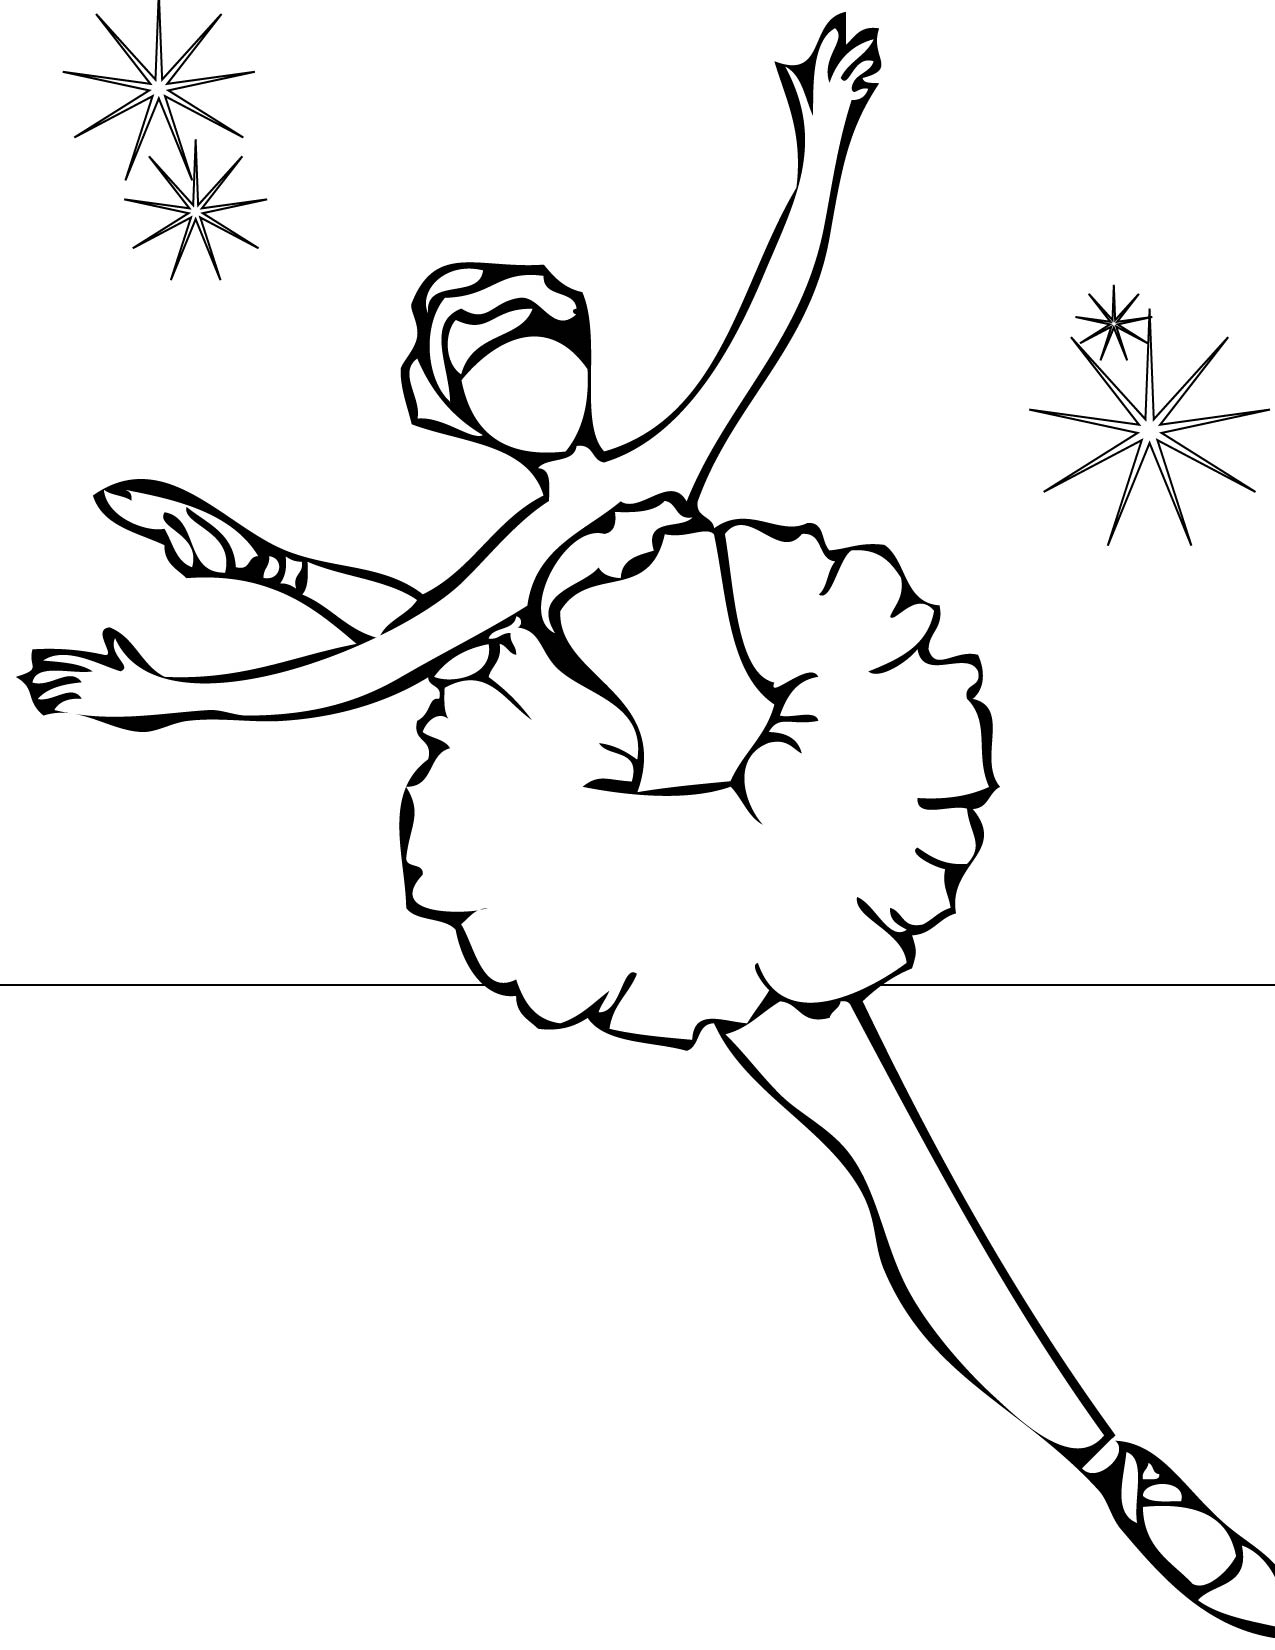 kids dancing coloring pages - photo#20